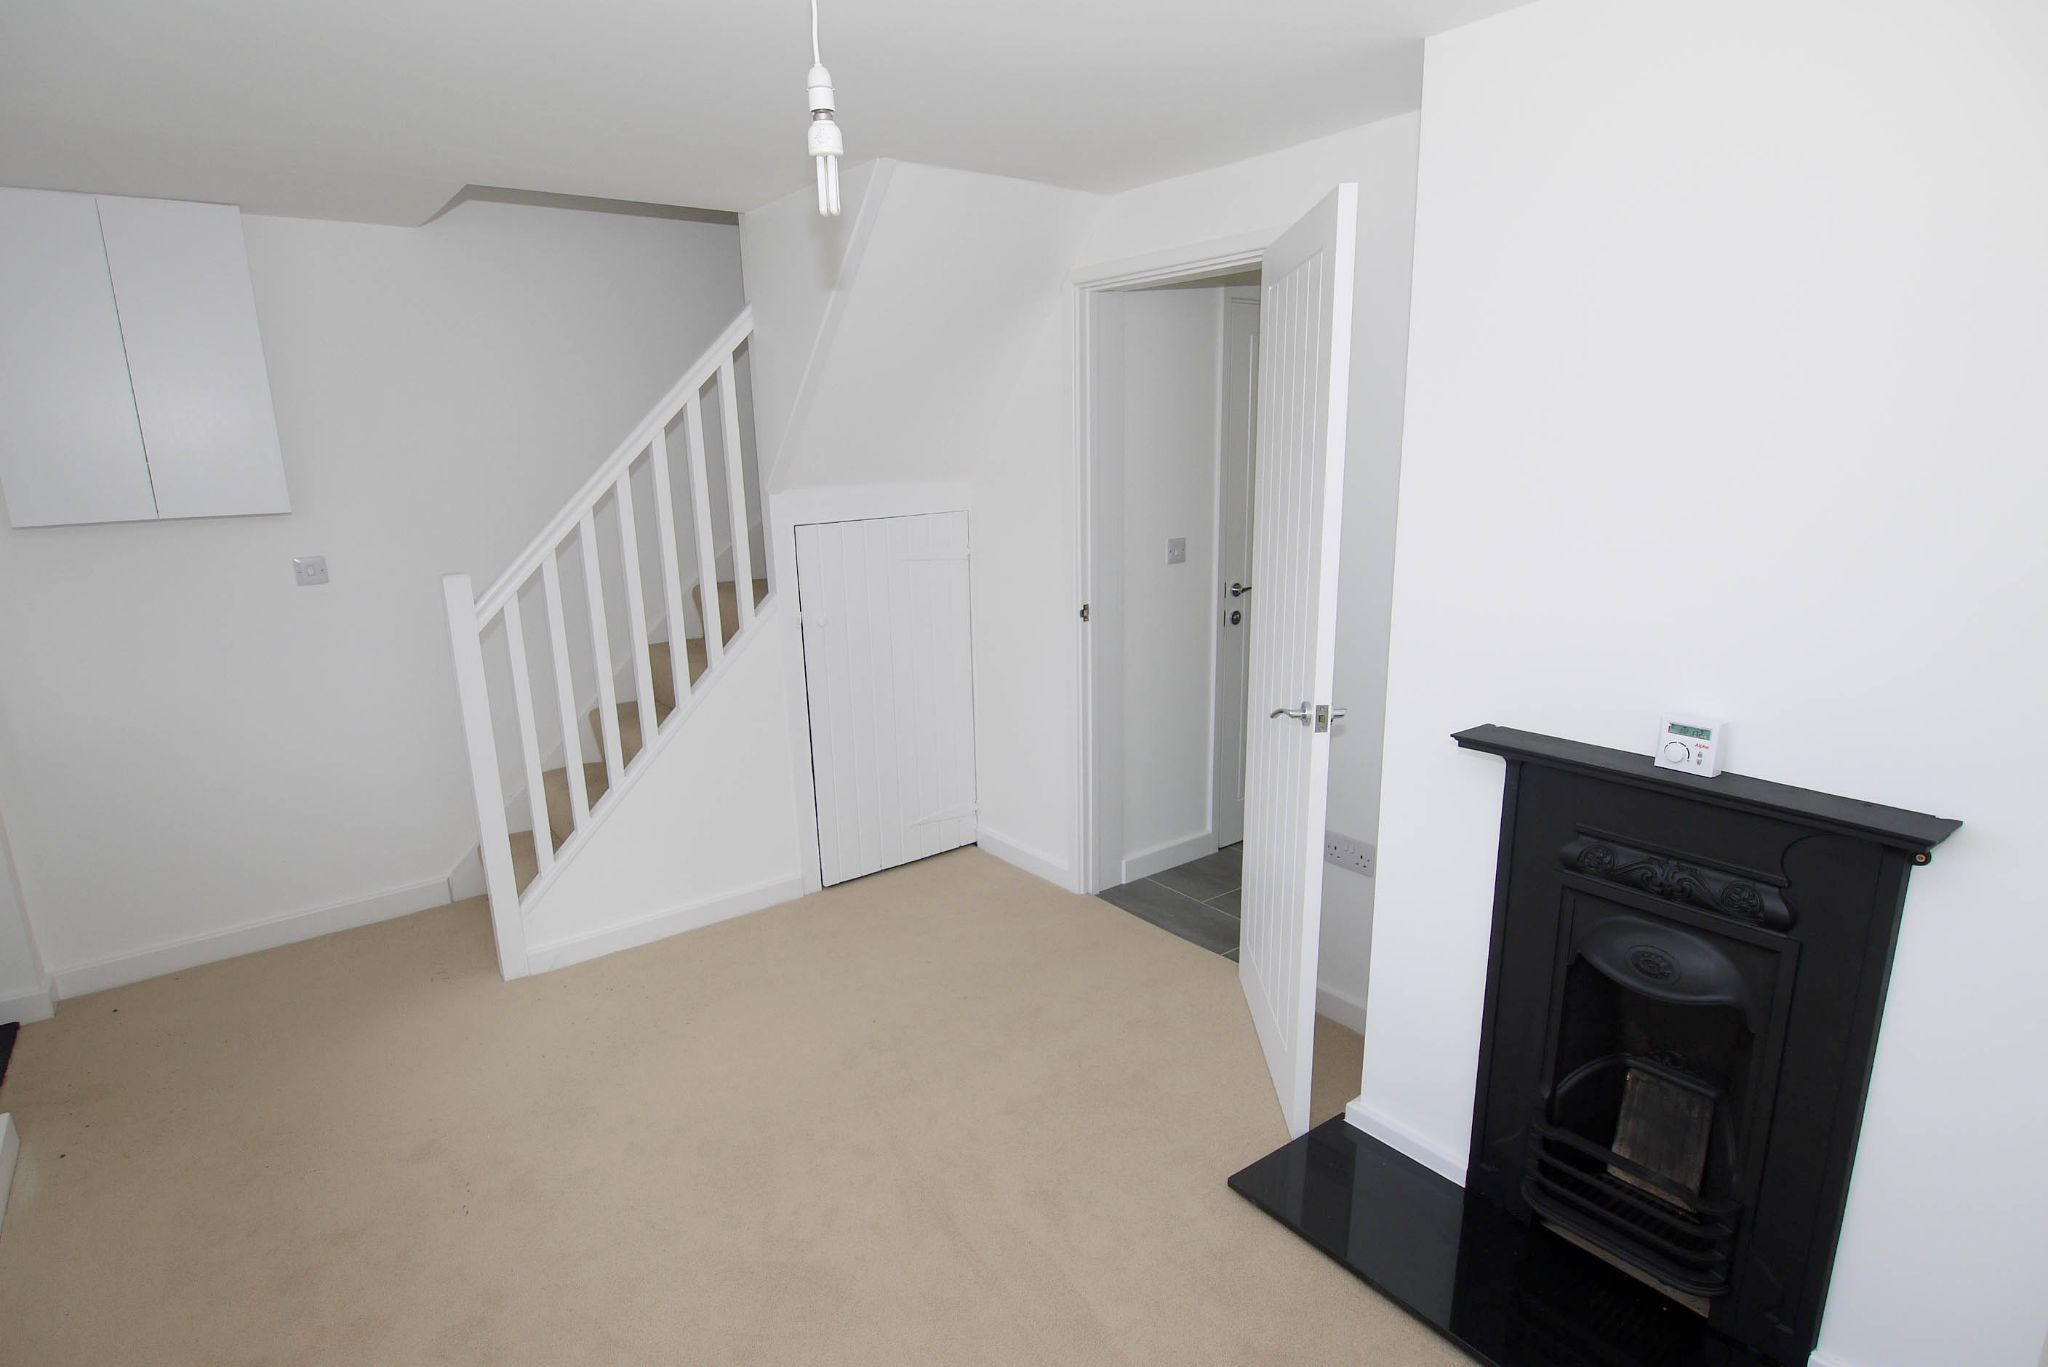 2 bedroom end terraced house Sold in Tonbridge - Photograph 5